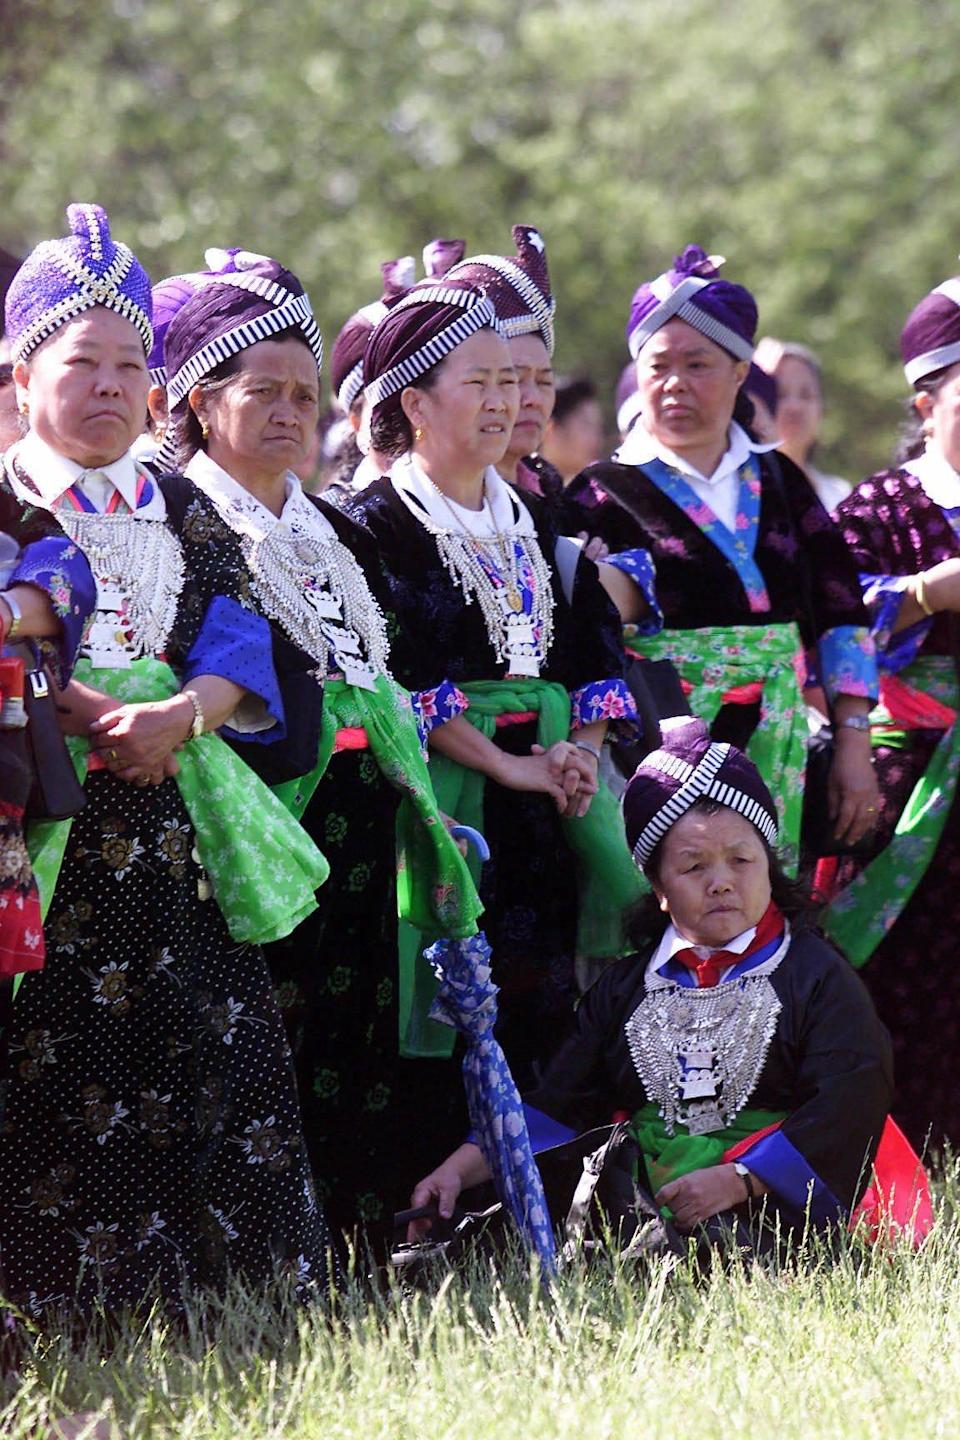 Hmong women wearing formal dresses used for special events, watching as Hmong and other Laotian-born vietnam veterans march to the Vietnam Veterans Memorial to mark the 25th anniversary of the end of the Vietnam War, Thursday morning in Washington, D.C. The color of the dresses indicate the village from which they come. (GNS Photo by Heather Martin Morrissey)